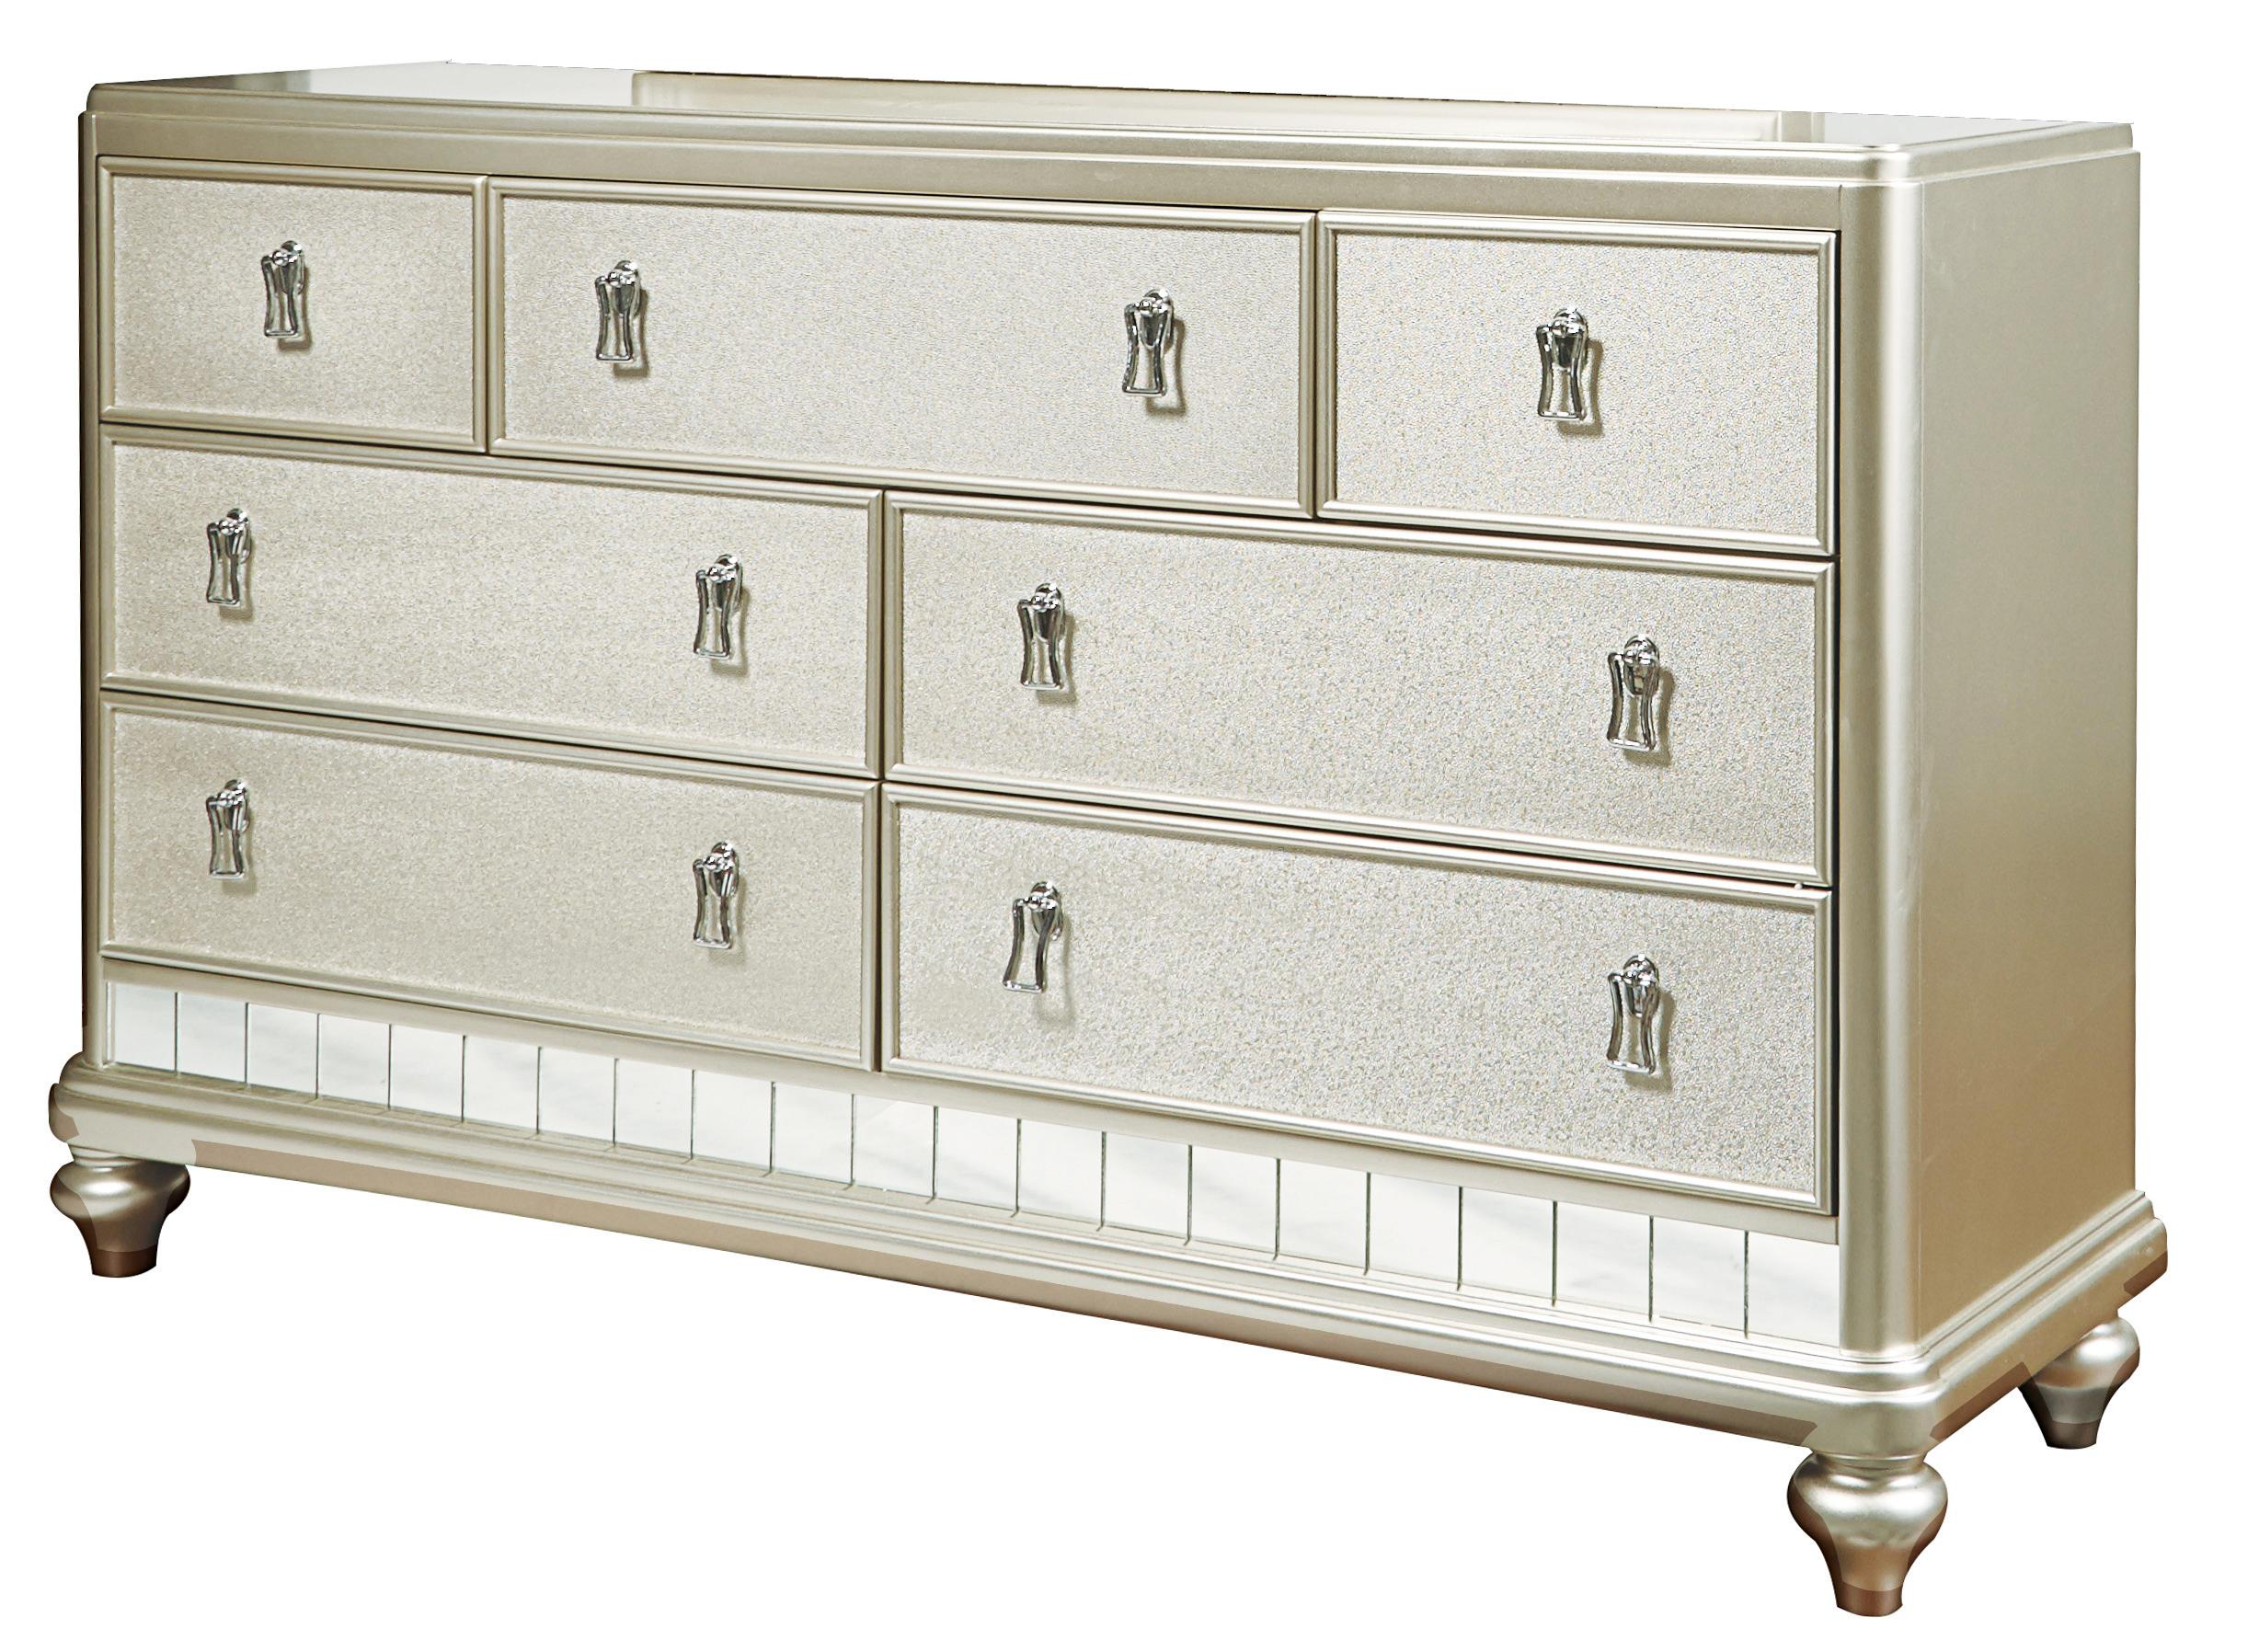 South Beach South Beach Dresser by Samuel Lawrence at Morris Home